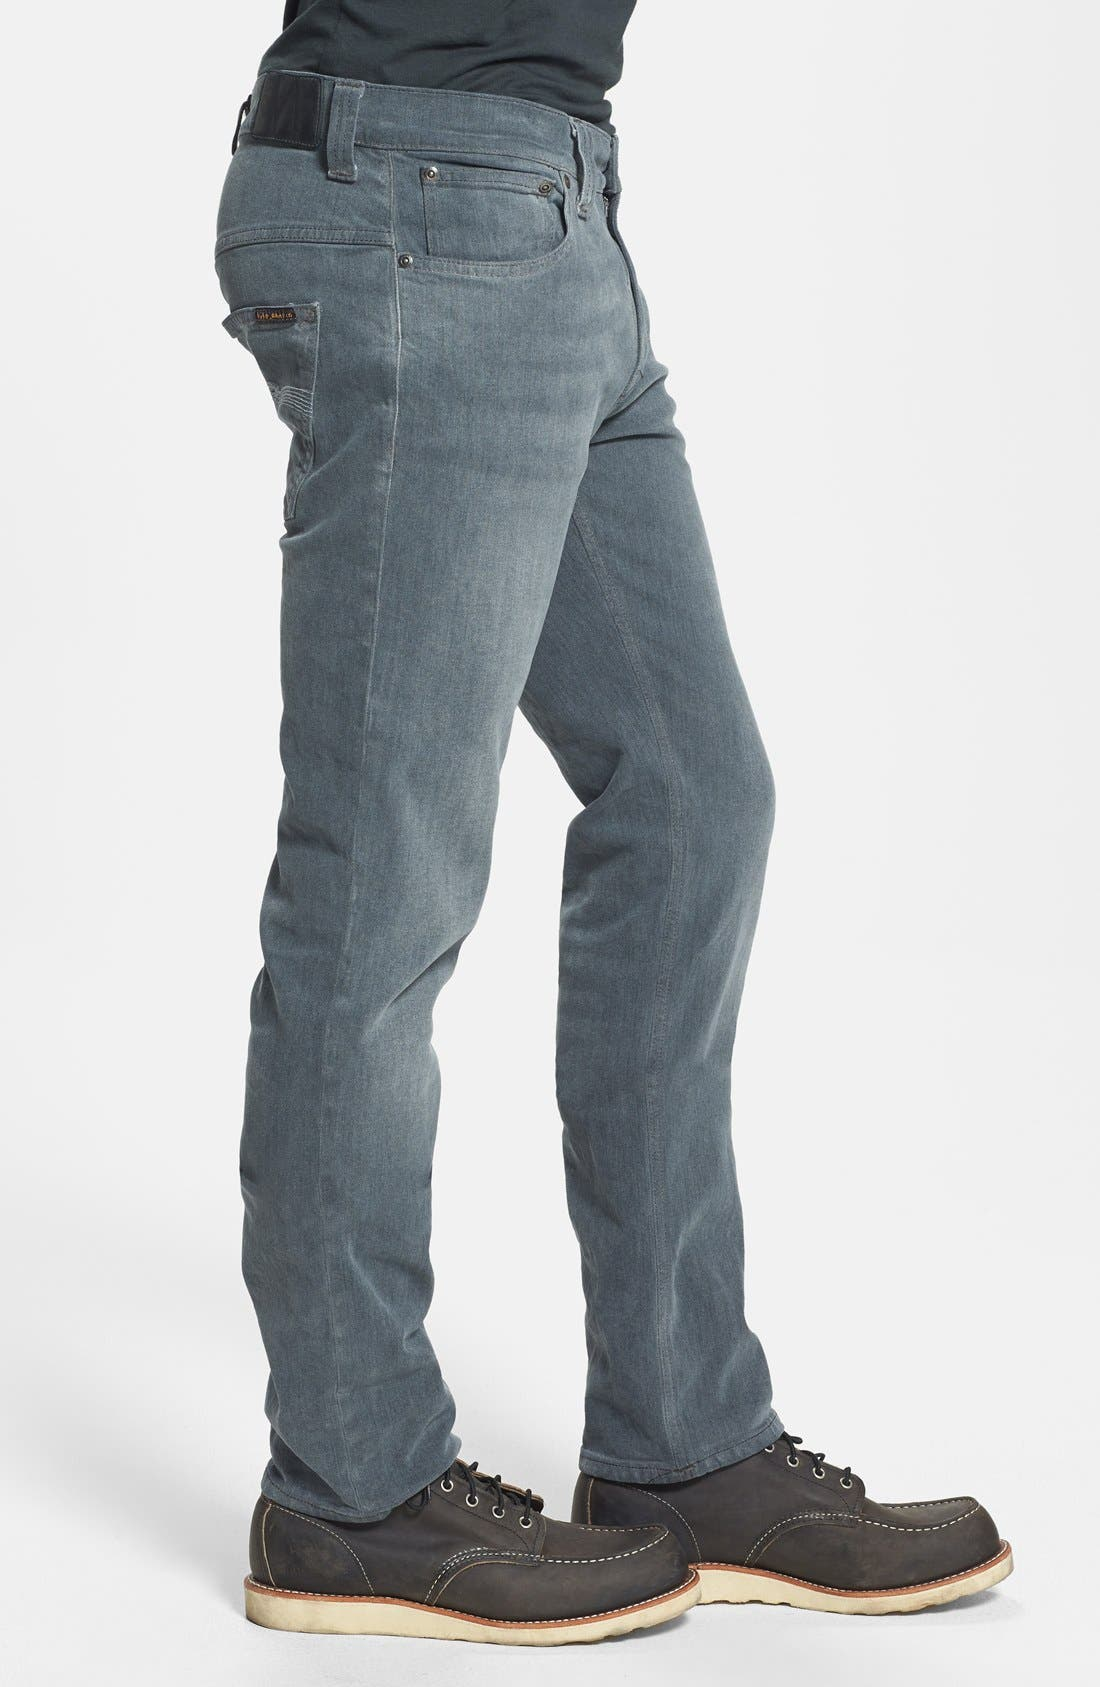 Alternate Image 3  - Nudie Jeans 'Thin Finn' Skinny Fit Jeans (Organic Lighter Shade)